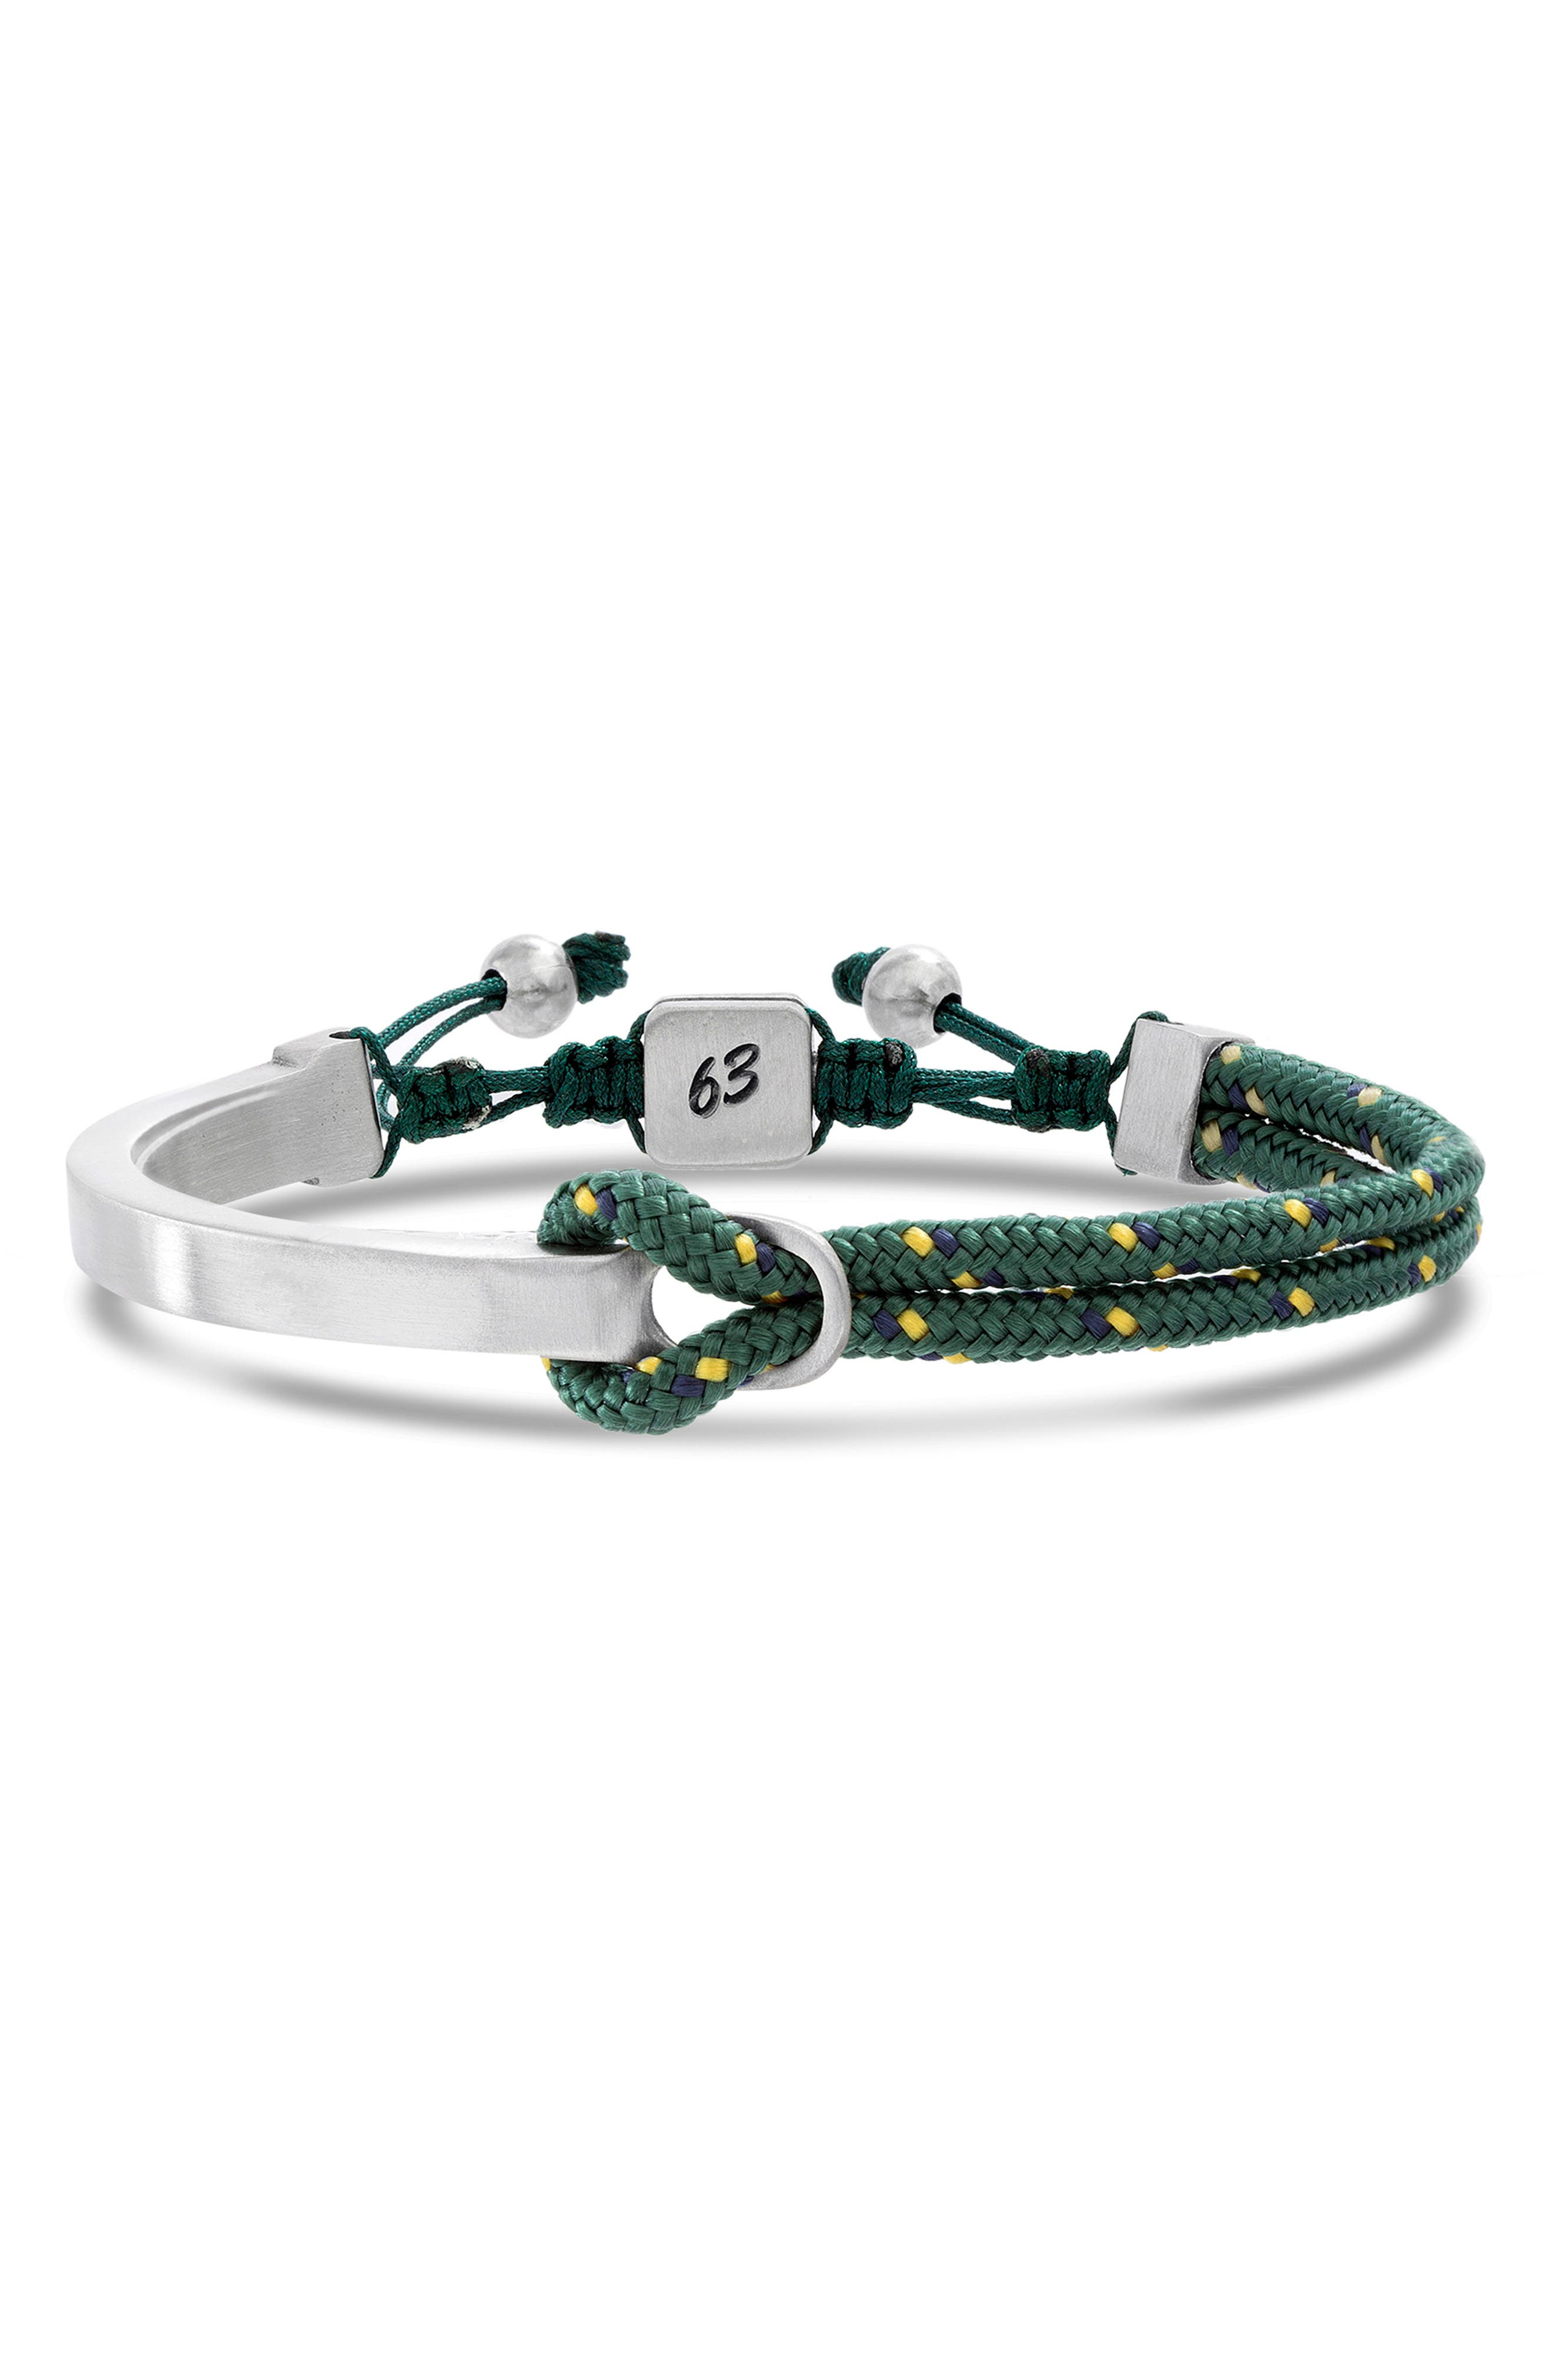 Adjustable ID Bracelet,                             Main thumbnail 1, color,                             GREEN/ YELLOW/ BLACK